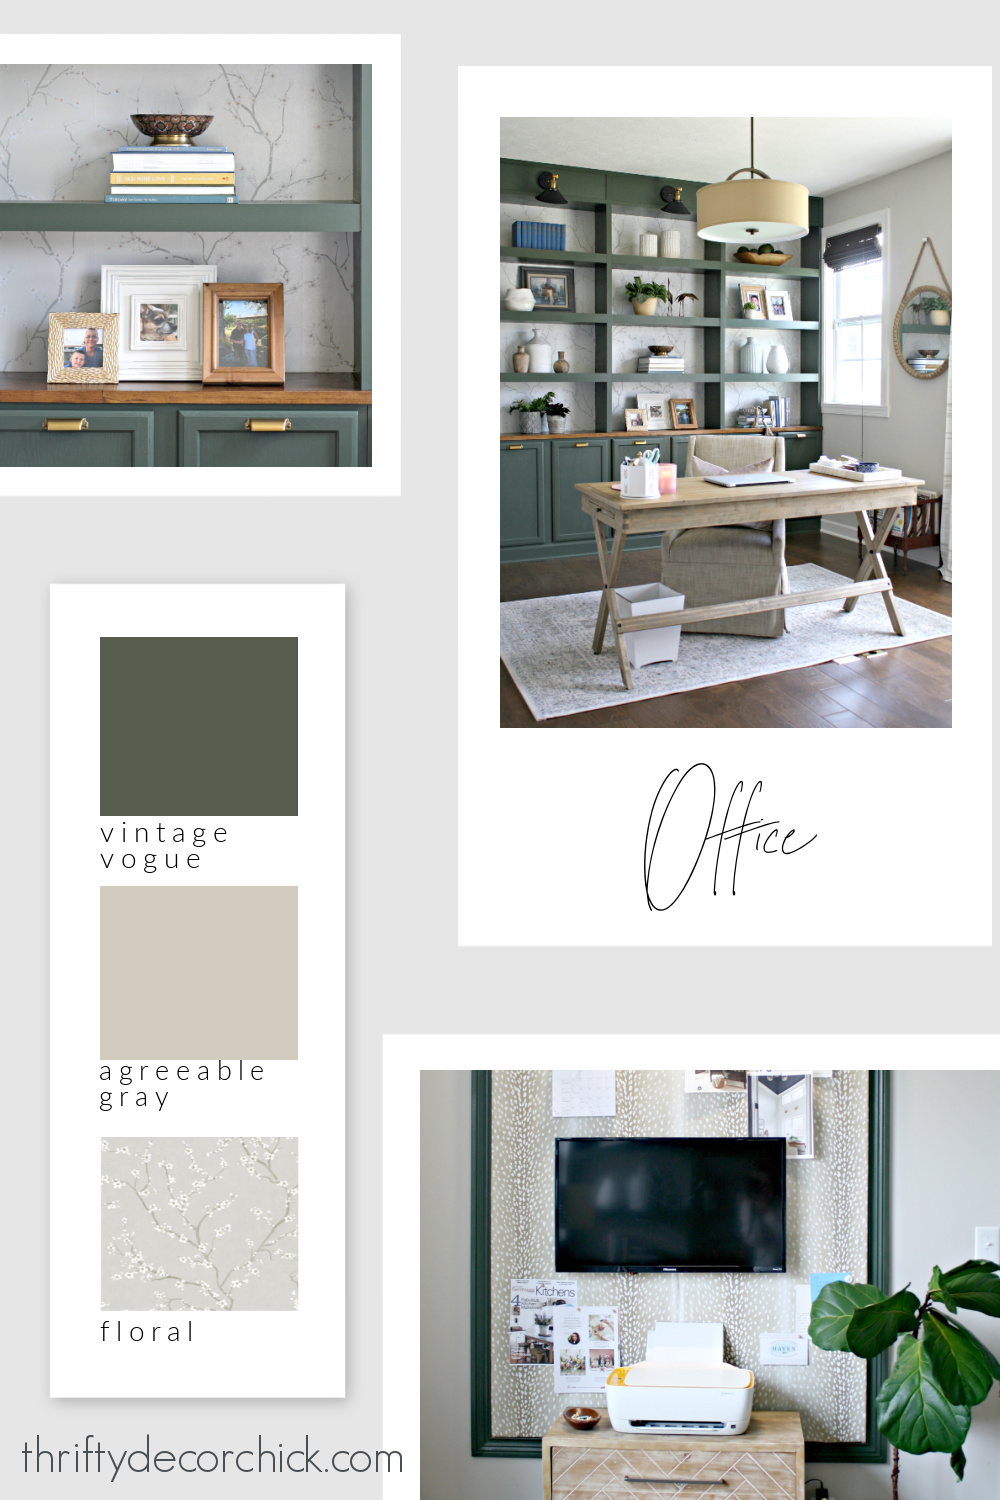 Thrifty Decor Chick office paint colors